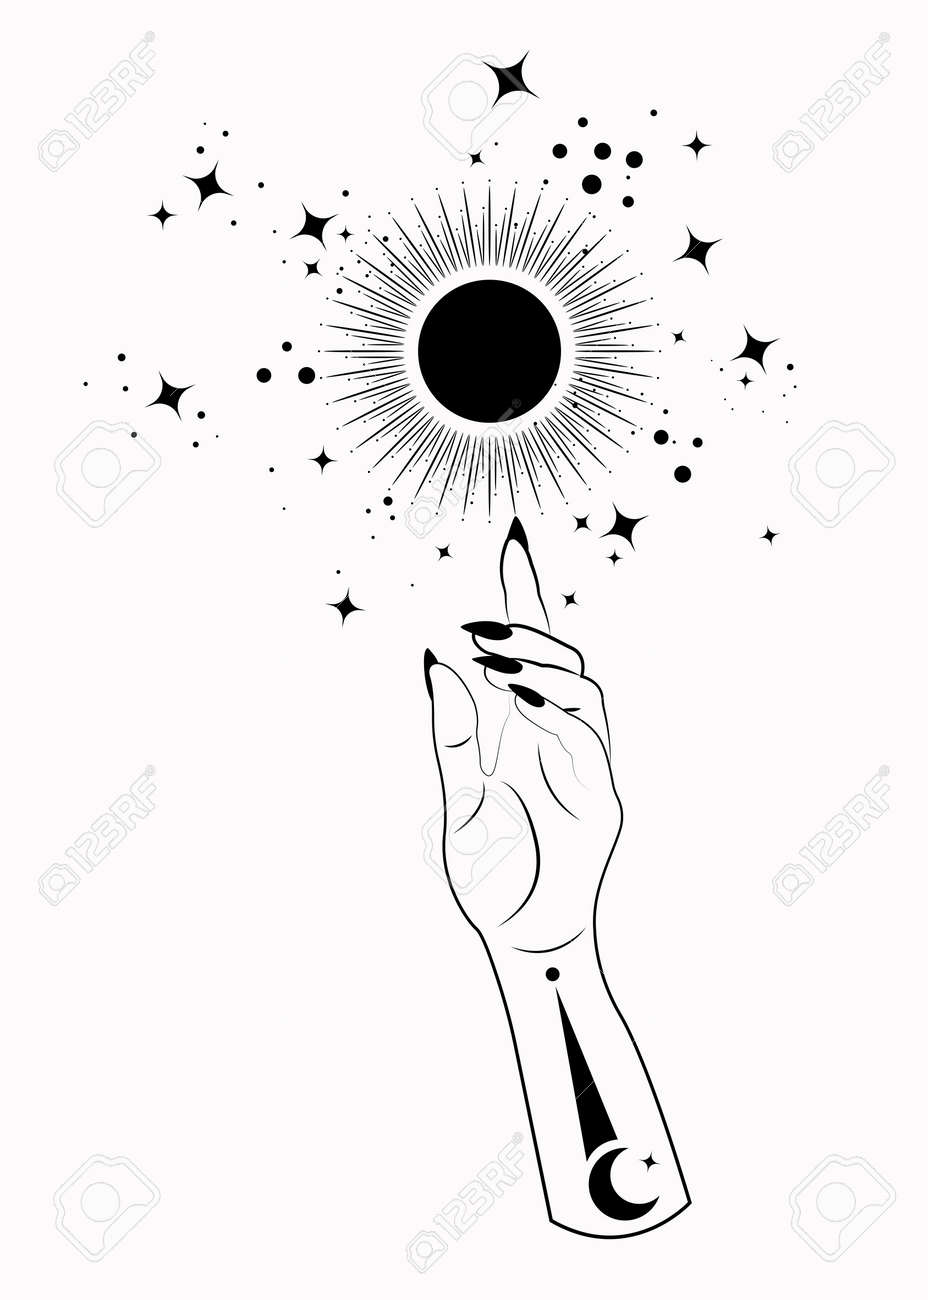 Mystical Woman Hand alchemy esoteric magic sun symbol, Sacred Geometry. Boho style Logo in black outline tattoo icon. Spiritual occultism mystic wicca sign. Vector template isolated on white - 173302425